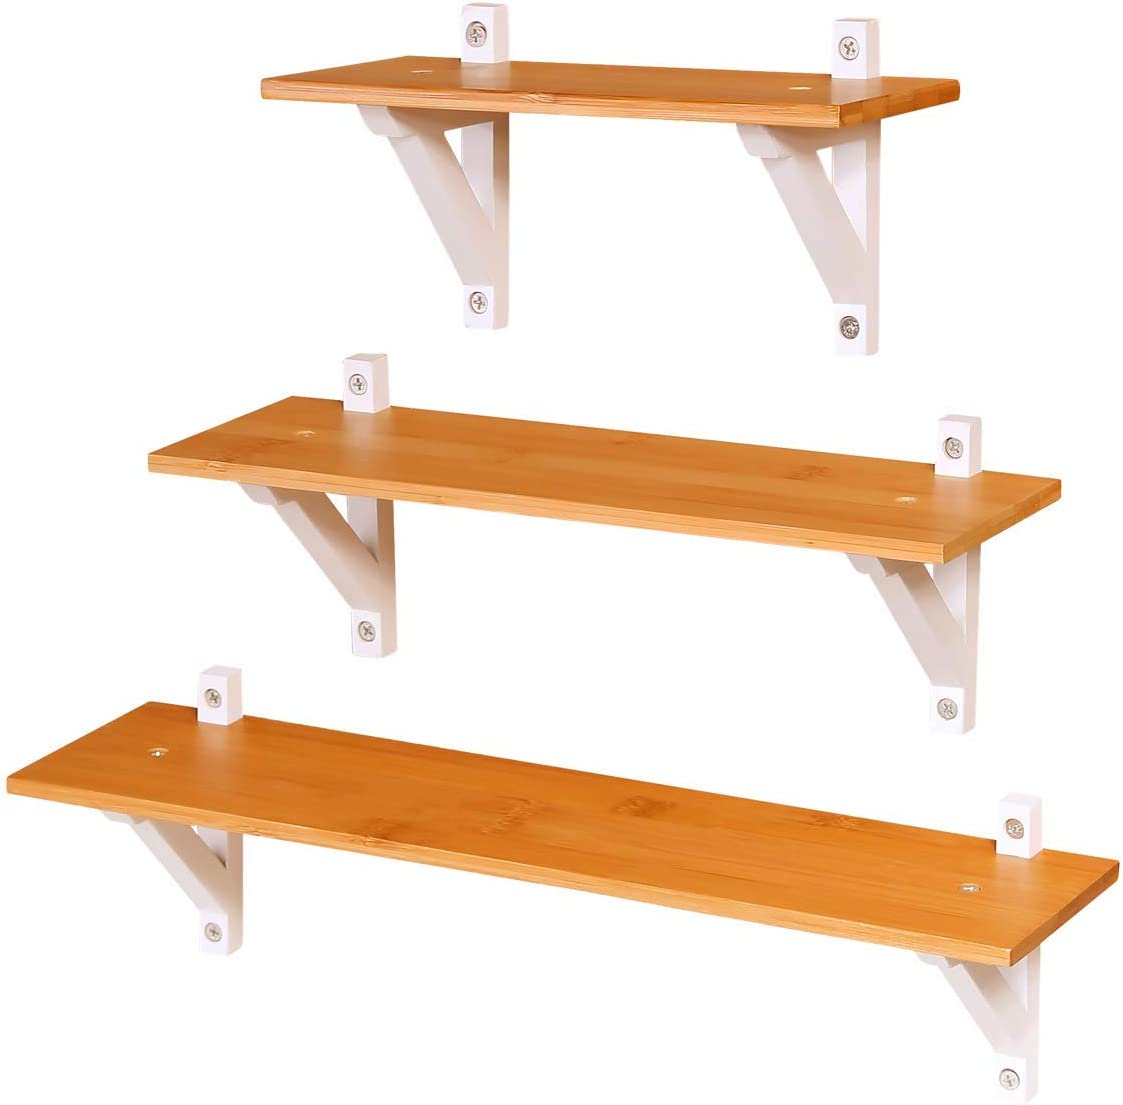 Free Amazon Promo Code 2020 for Floating Shelves Wall Mounted